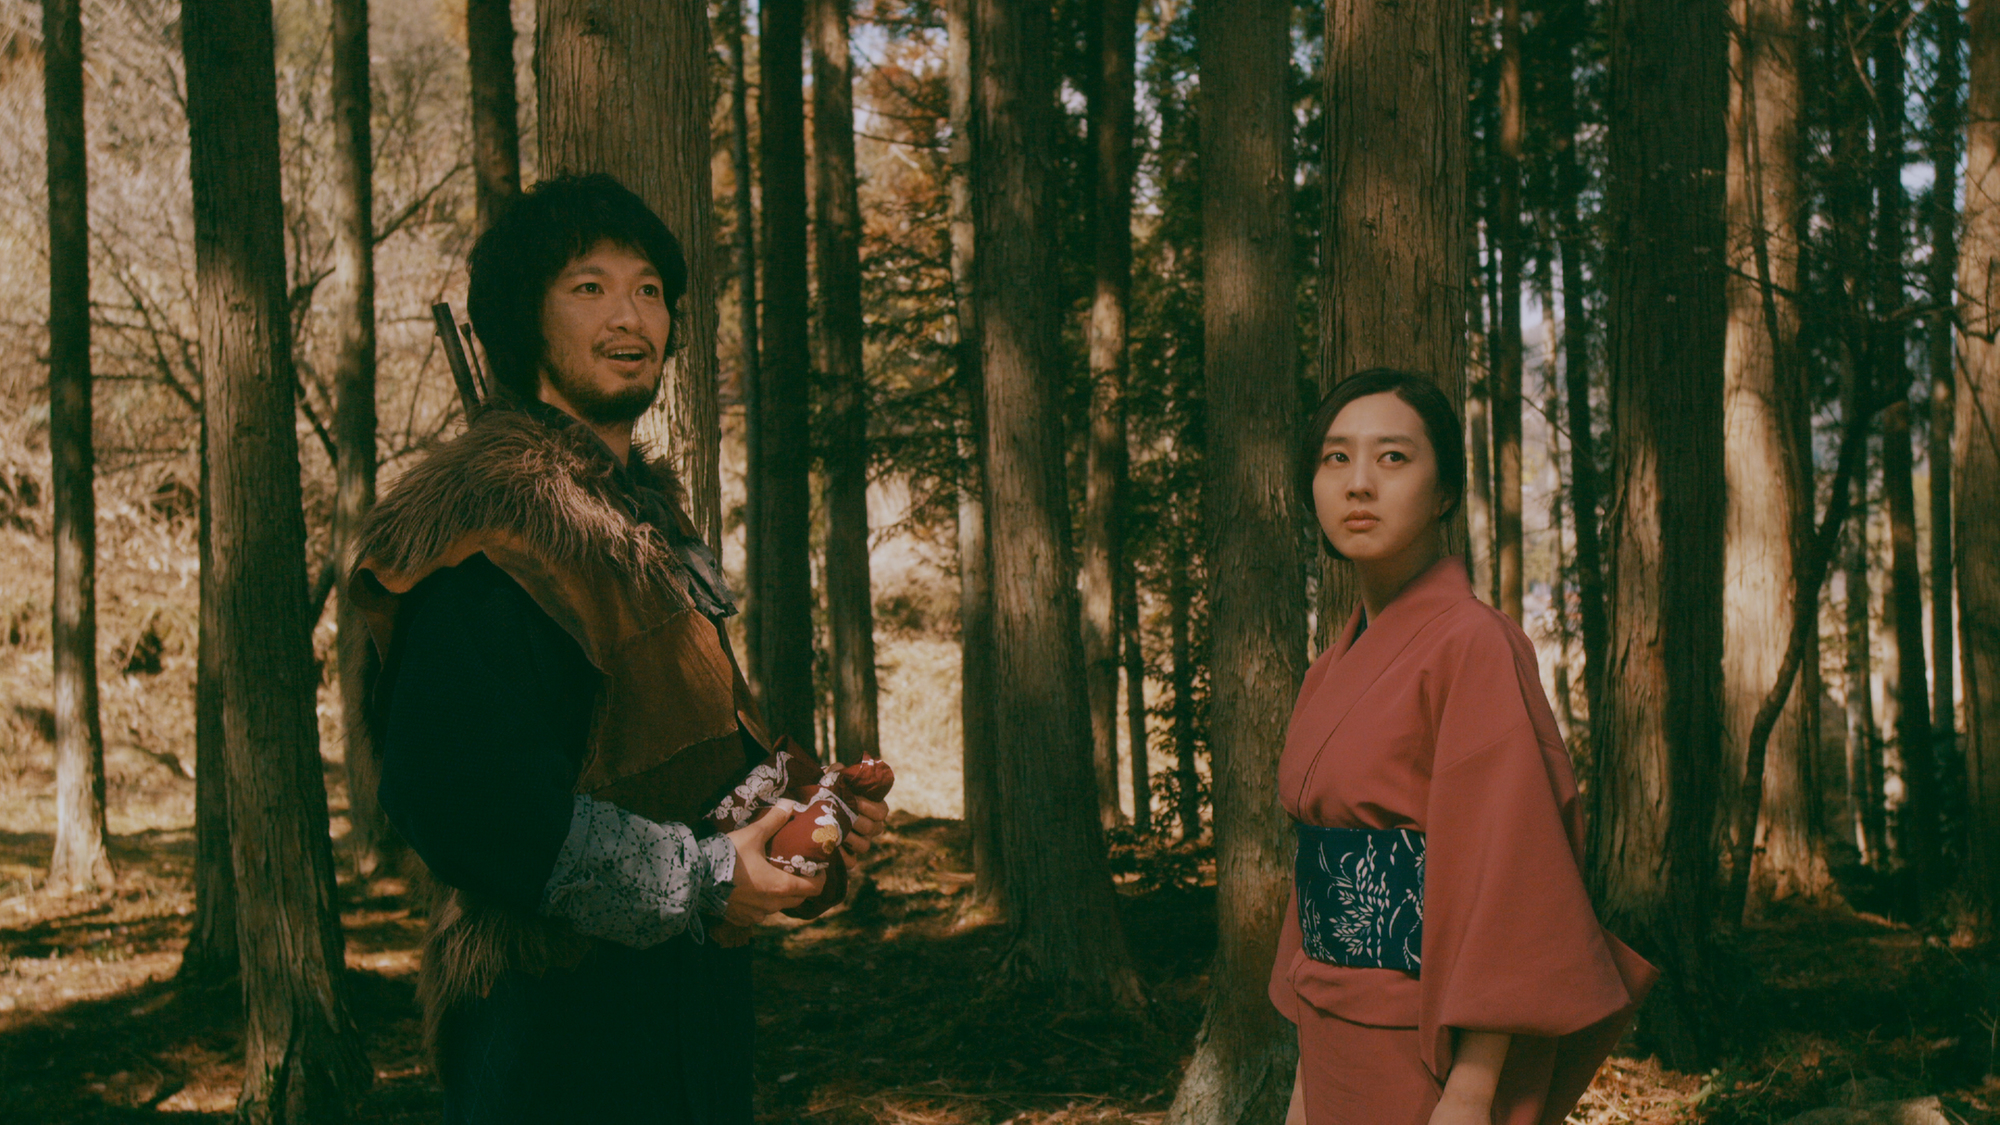 Director Kiki Sugino makes Japanese folklore chillingly modern, News